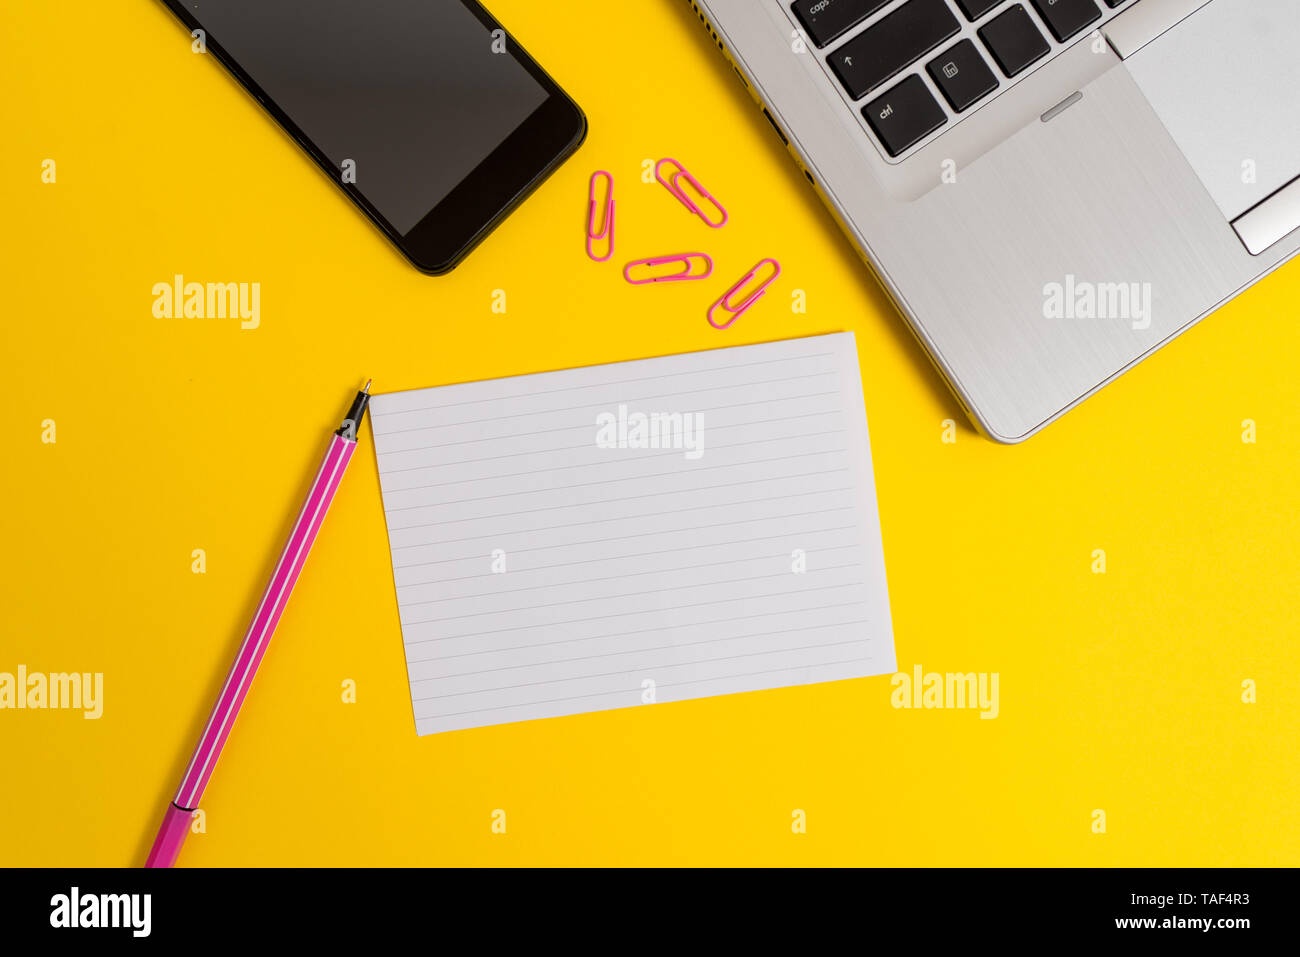 Trendy open laptop smartphone marker paper sheet clips colored background - Stock Image